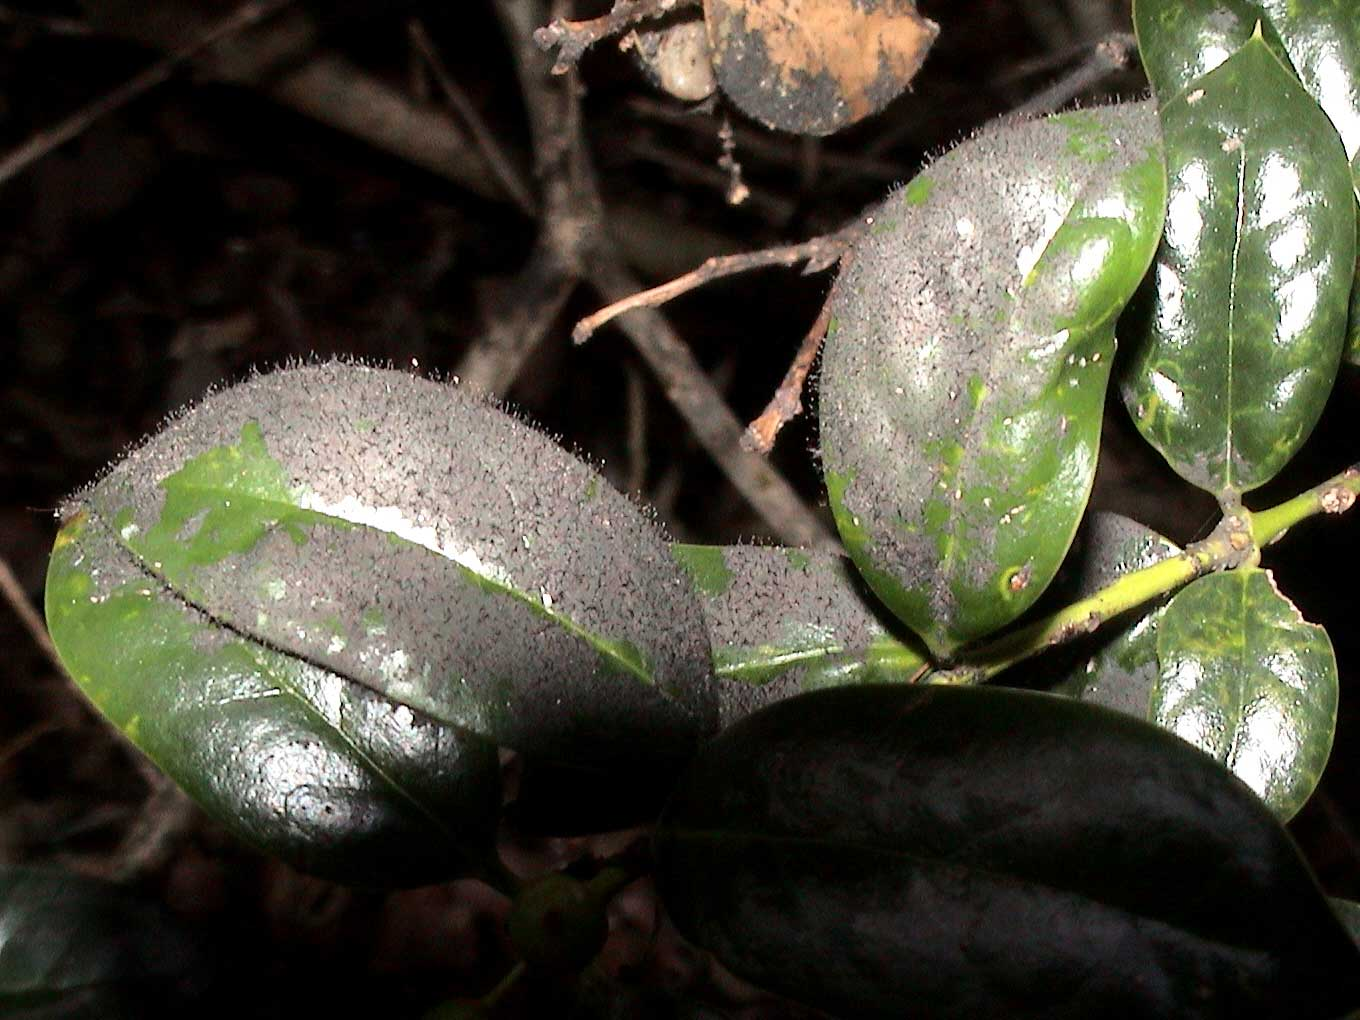 Figure 2. Vigorously growing sooty mold on holly. Note the sooty mold fungi are producing stalks (conidiophores) to launch their spores into the air.